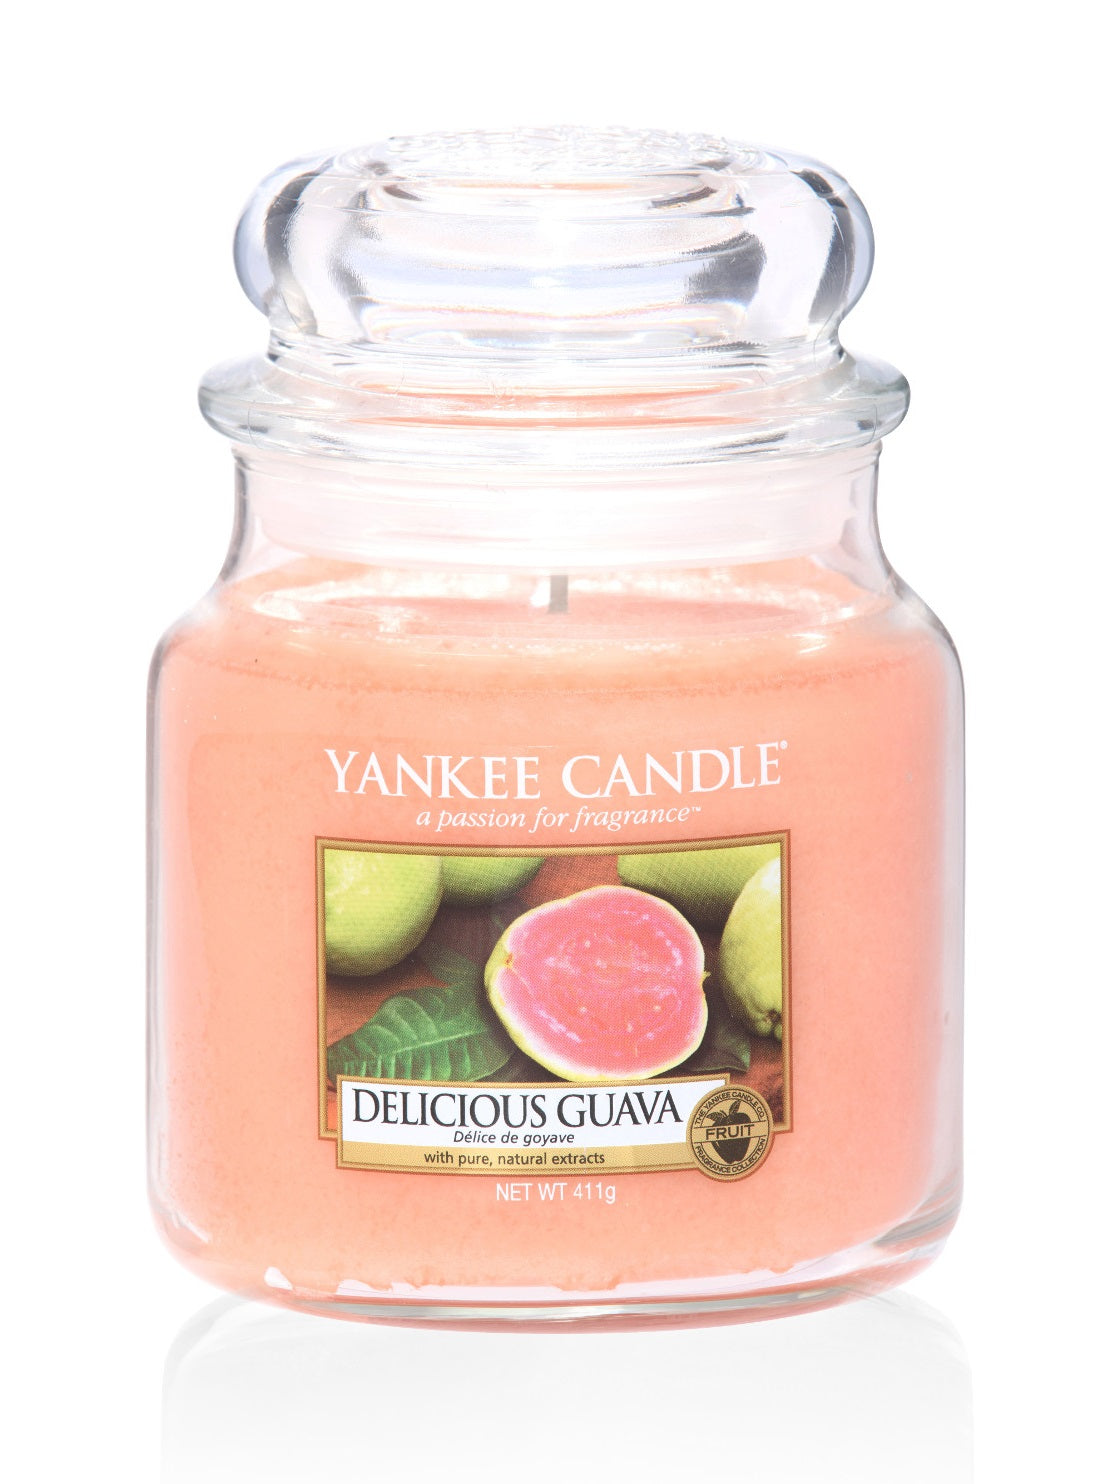 DELICIOUS GUAVA -Yankee Candle- Giara Media